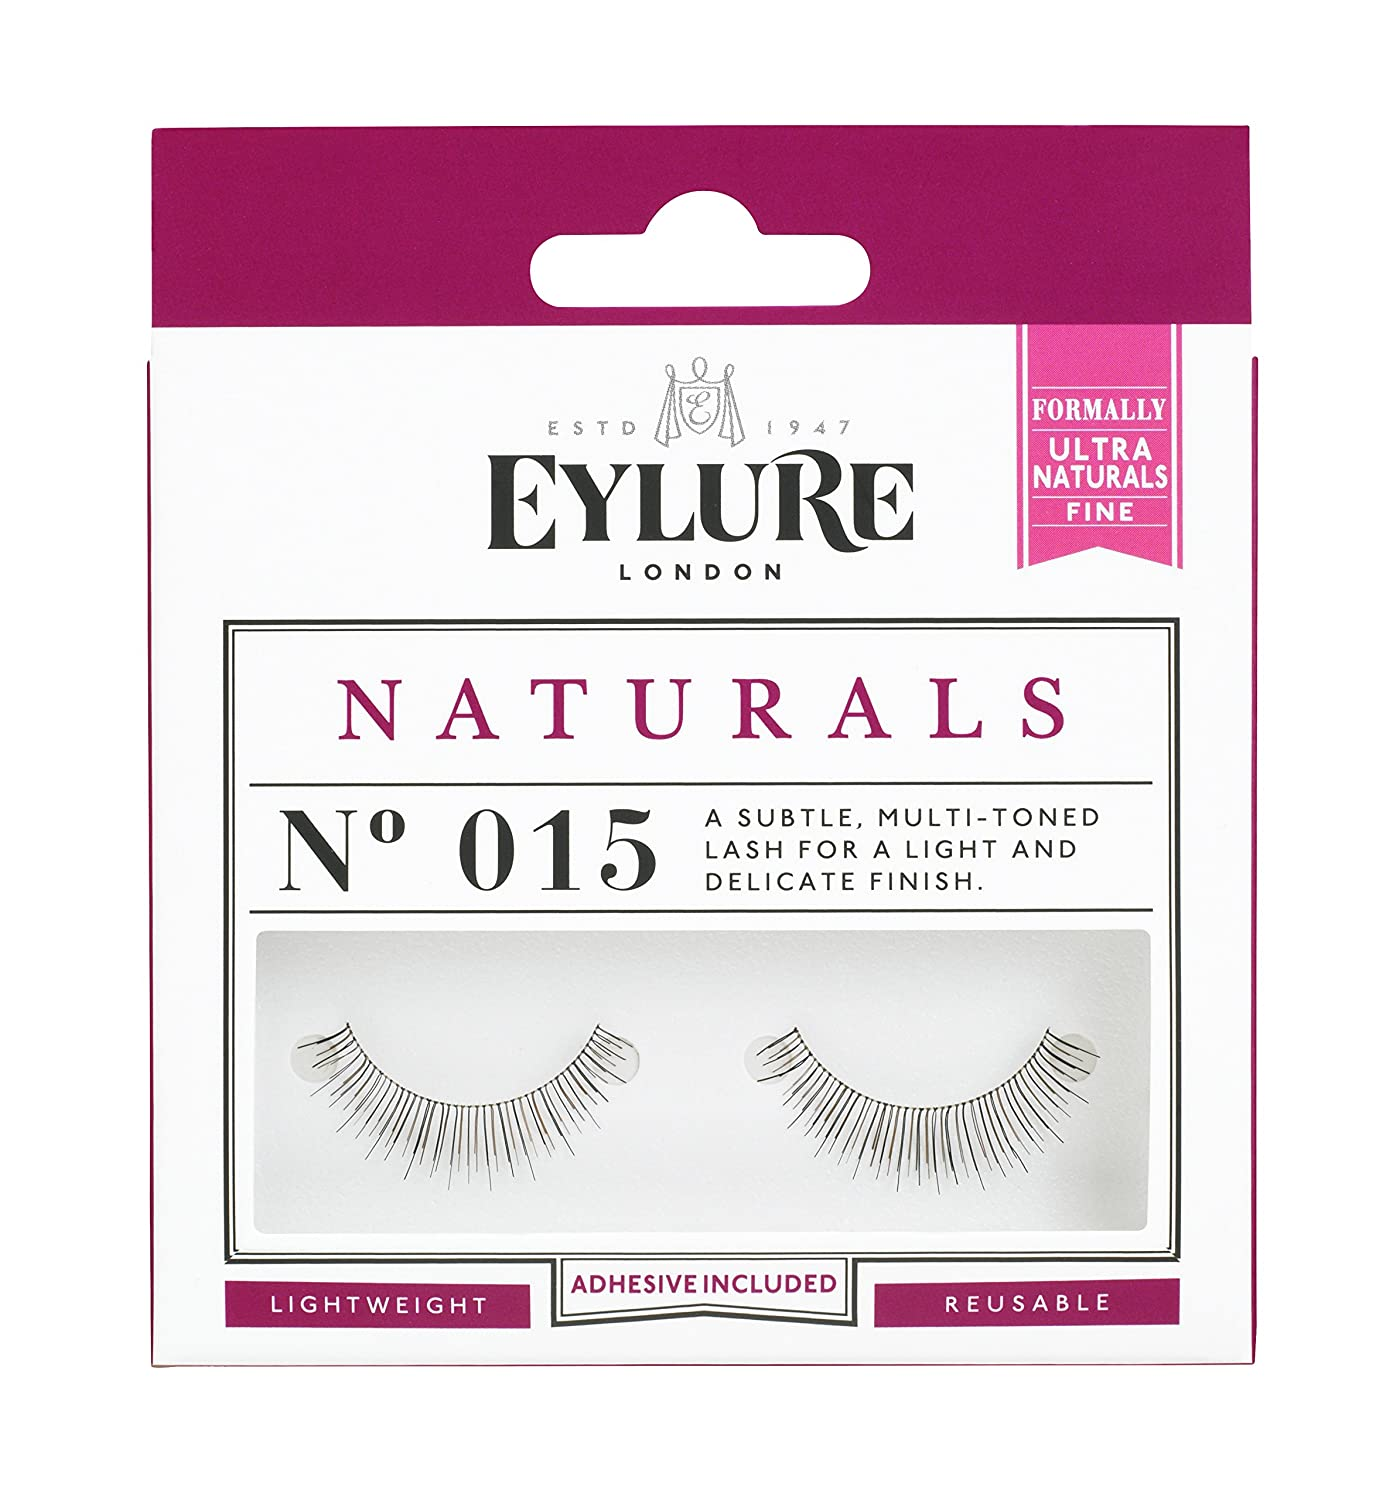 0d45f86d9f8 Eylure No. 015 (Naturals) was Ultra Fine Strip Lashes: Amazon.co.uk ...